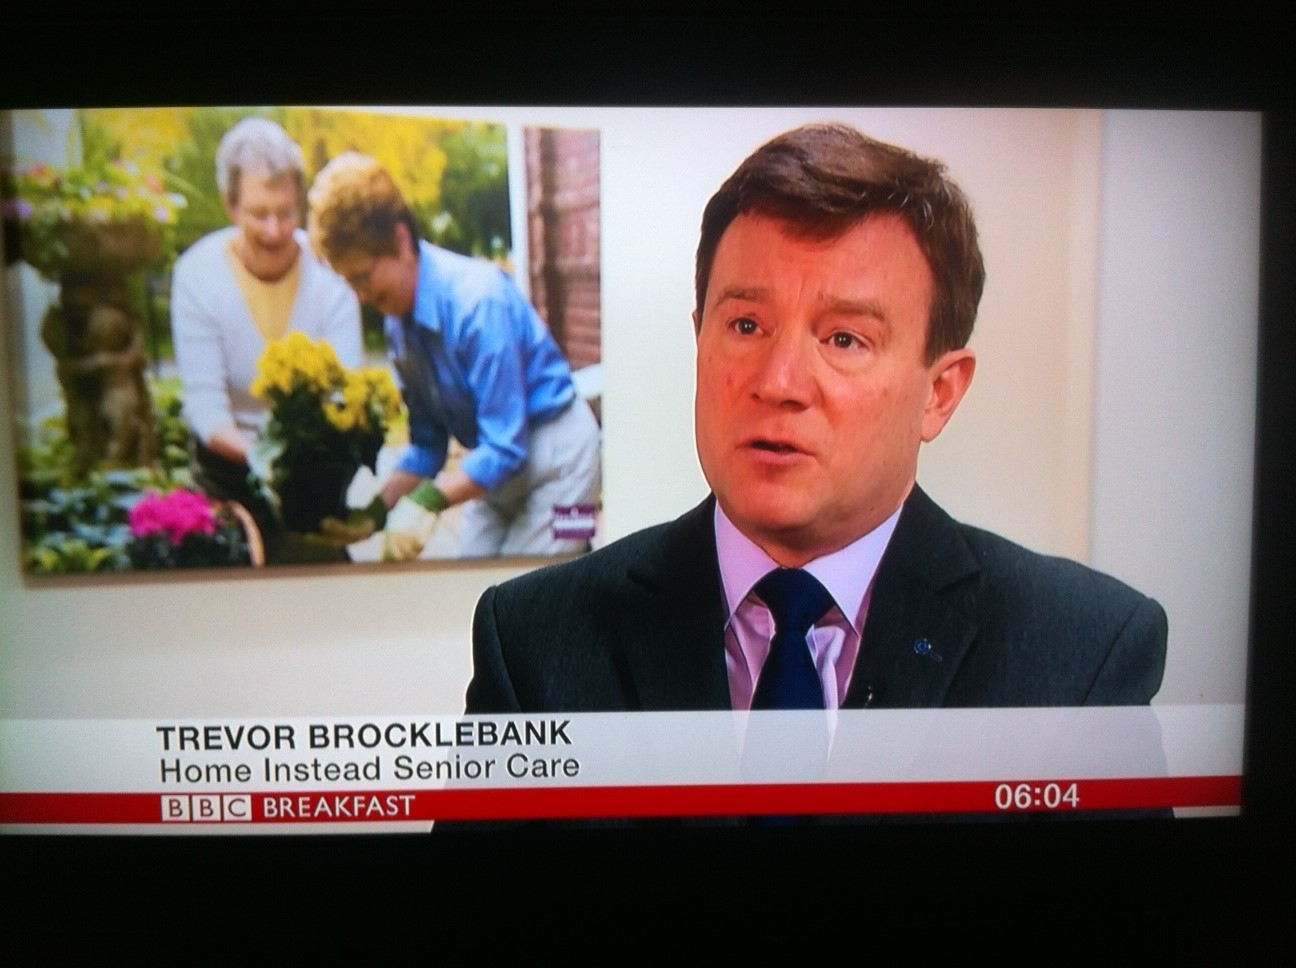 Home Instead Senior Care CEO Trevor Brocklebank on the BBC Breakfast programme